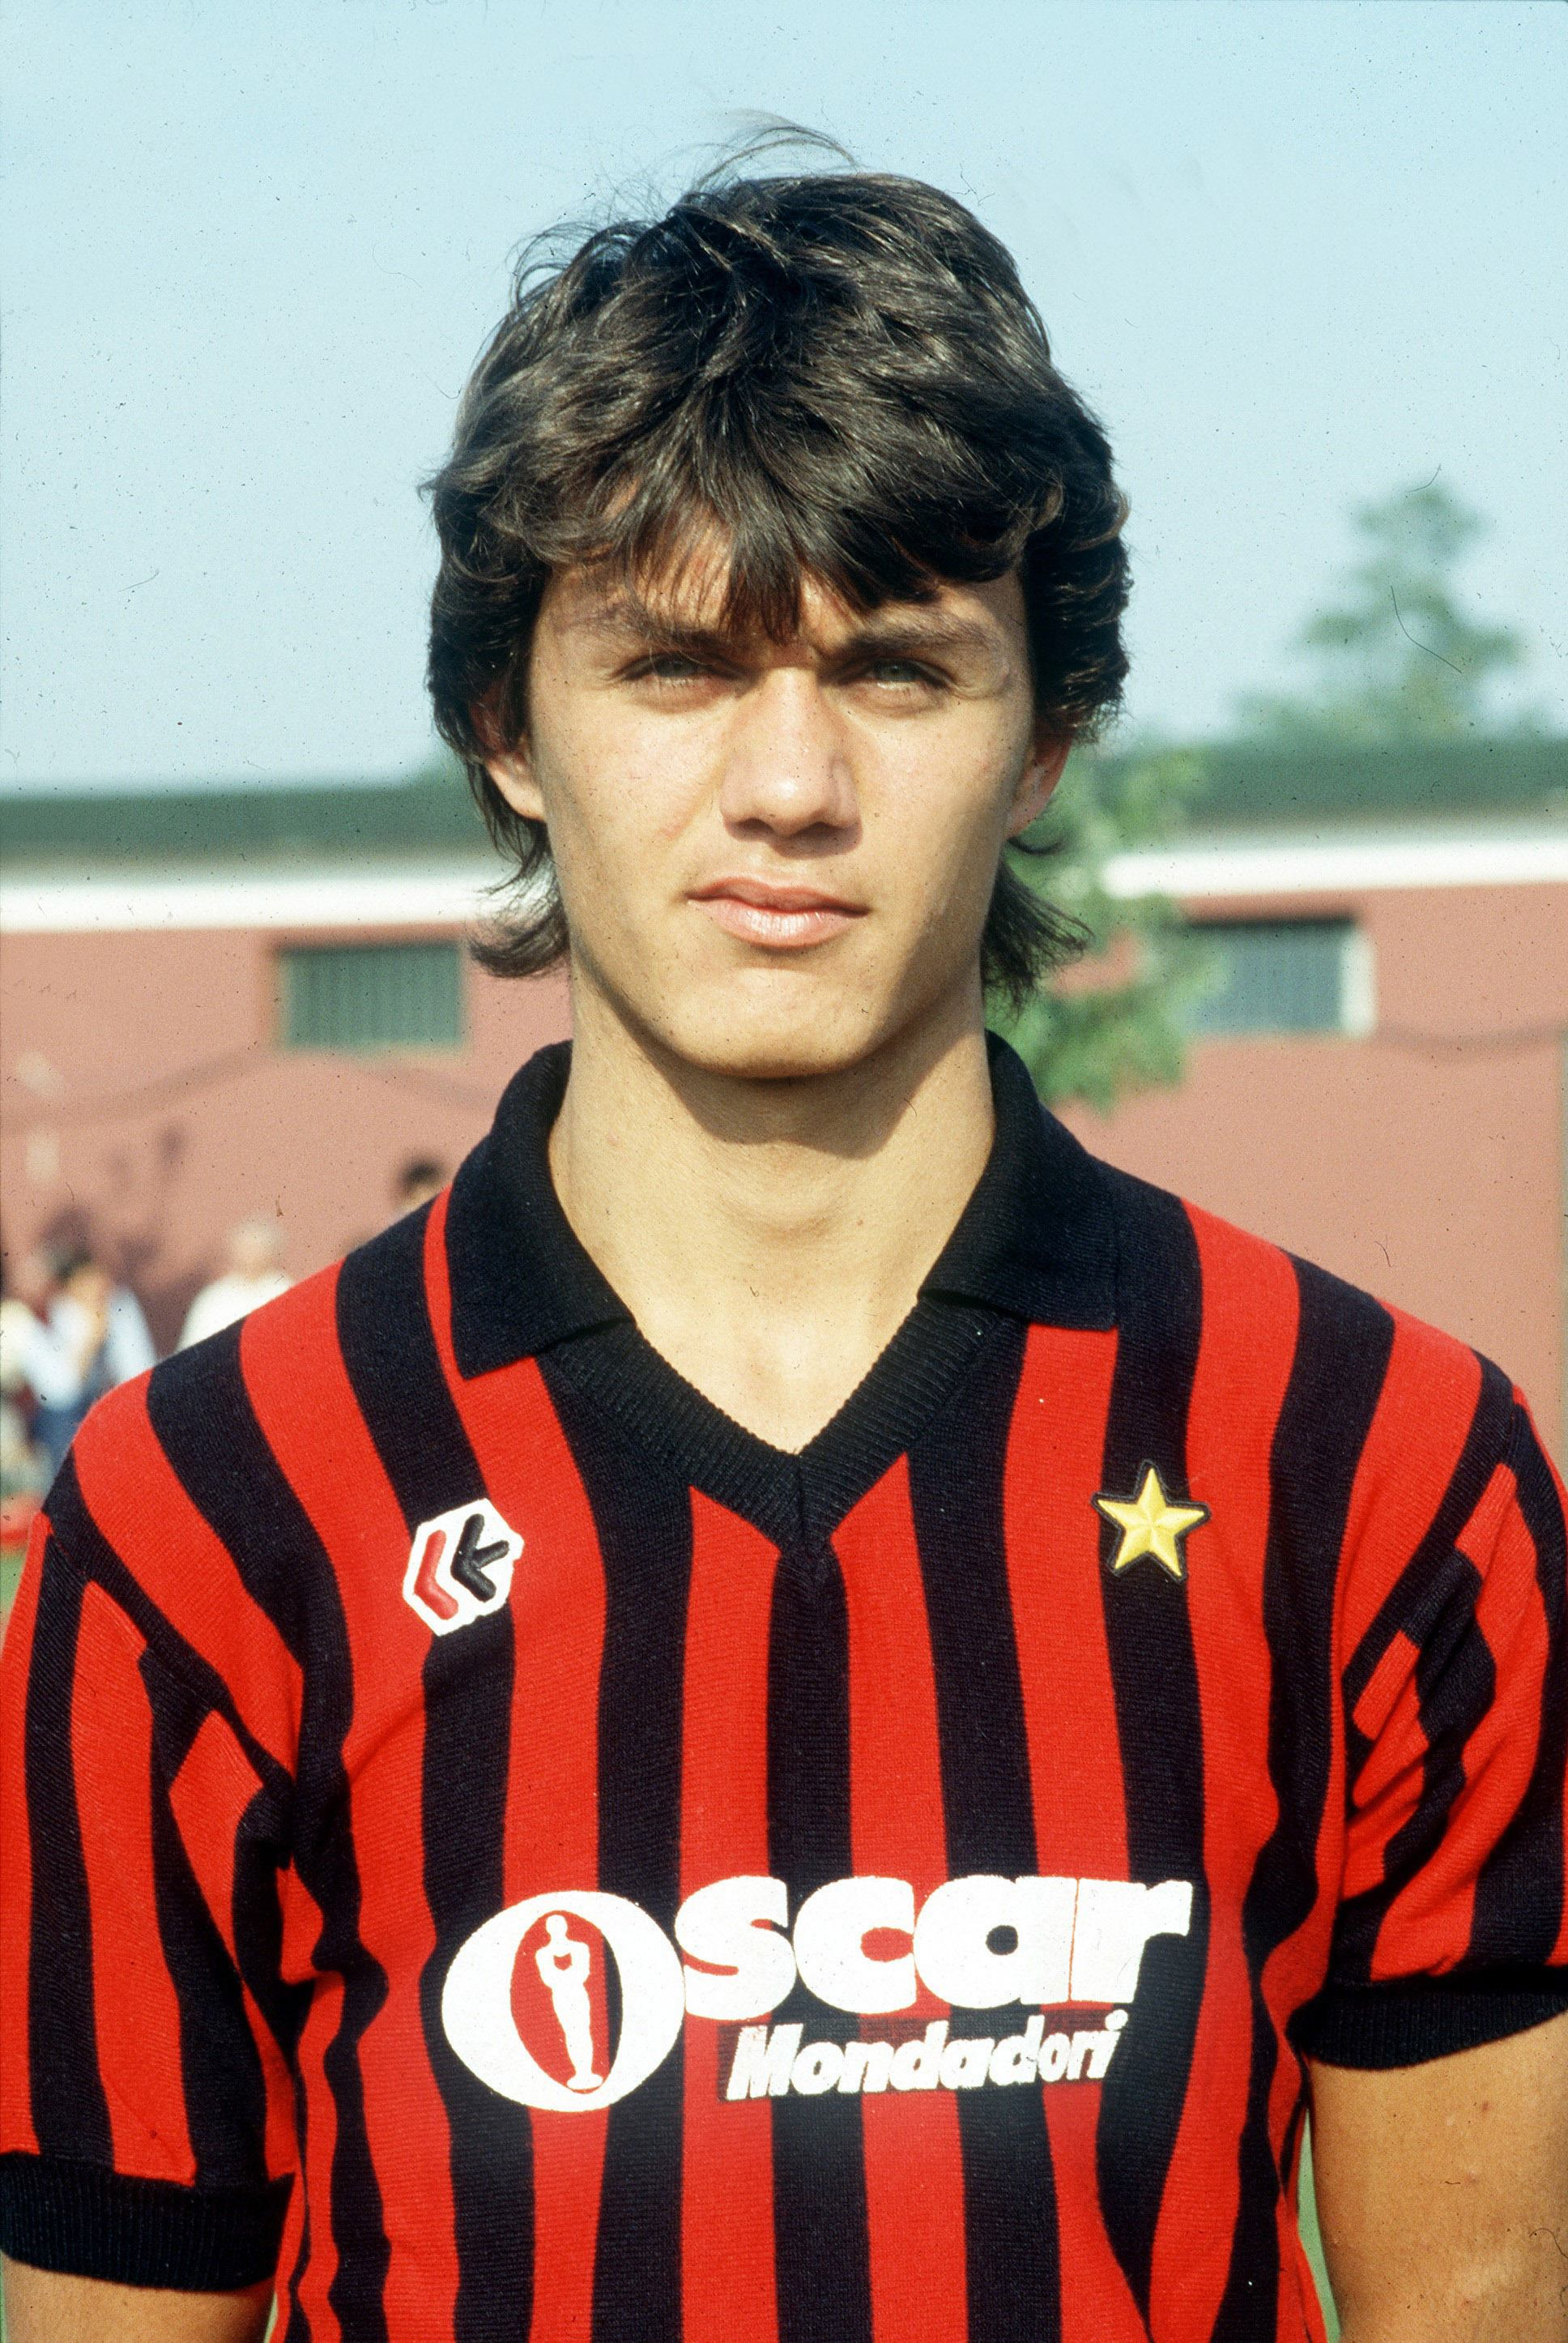 Paolo Maldini younger photo two at pinterest.com